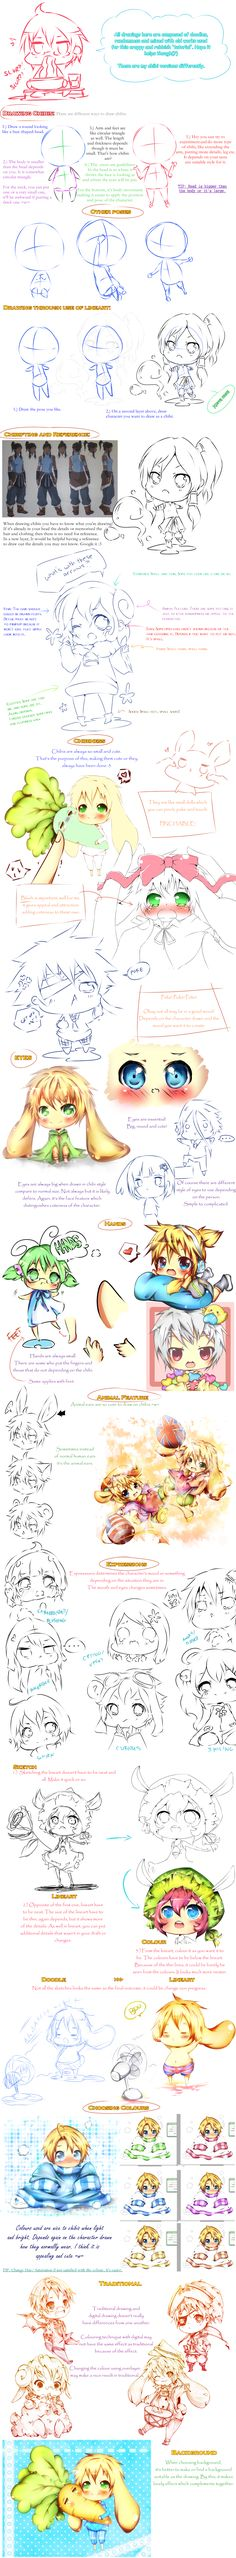 Tutorial: Chibi and stuffs by Haxelo.deviantart.com on @deviantART